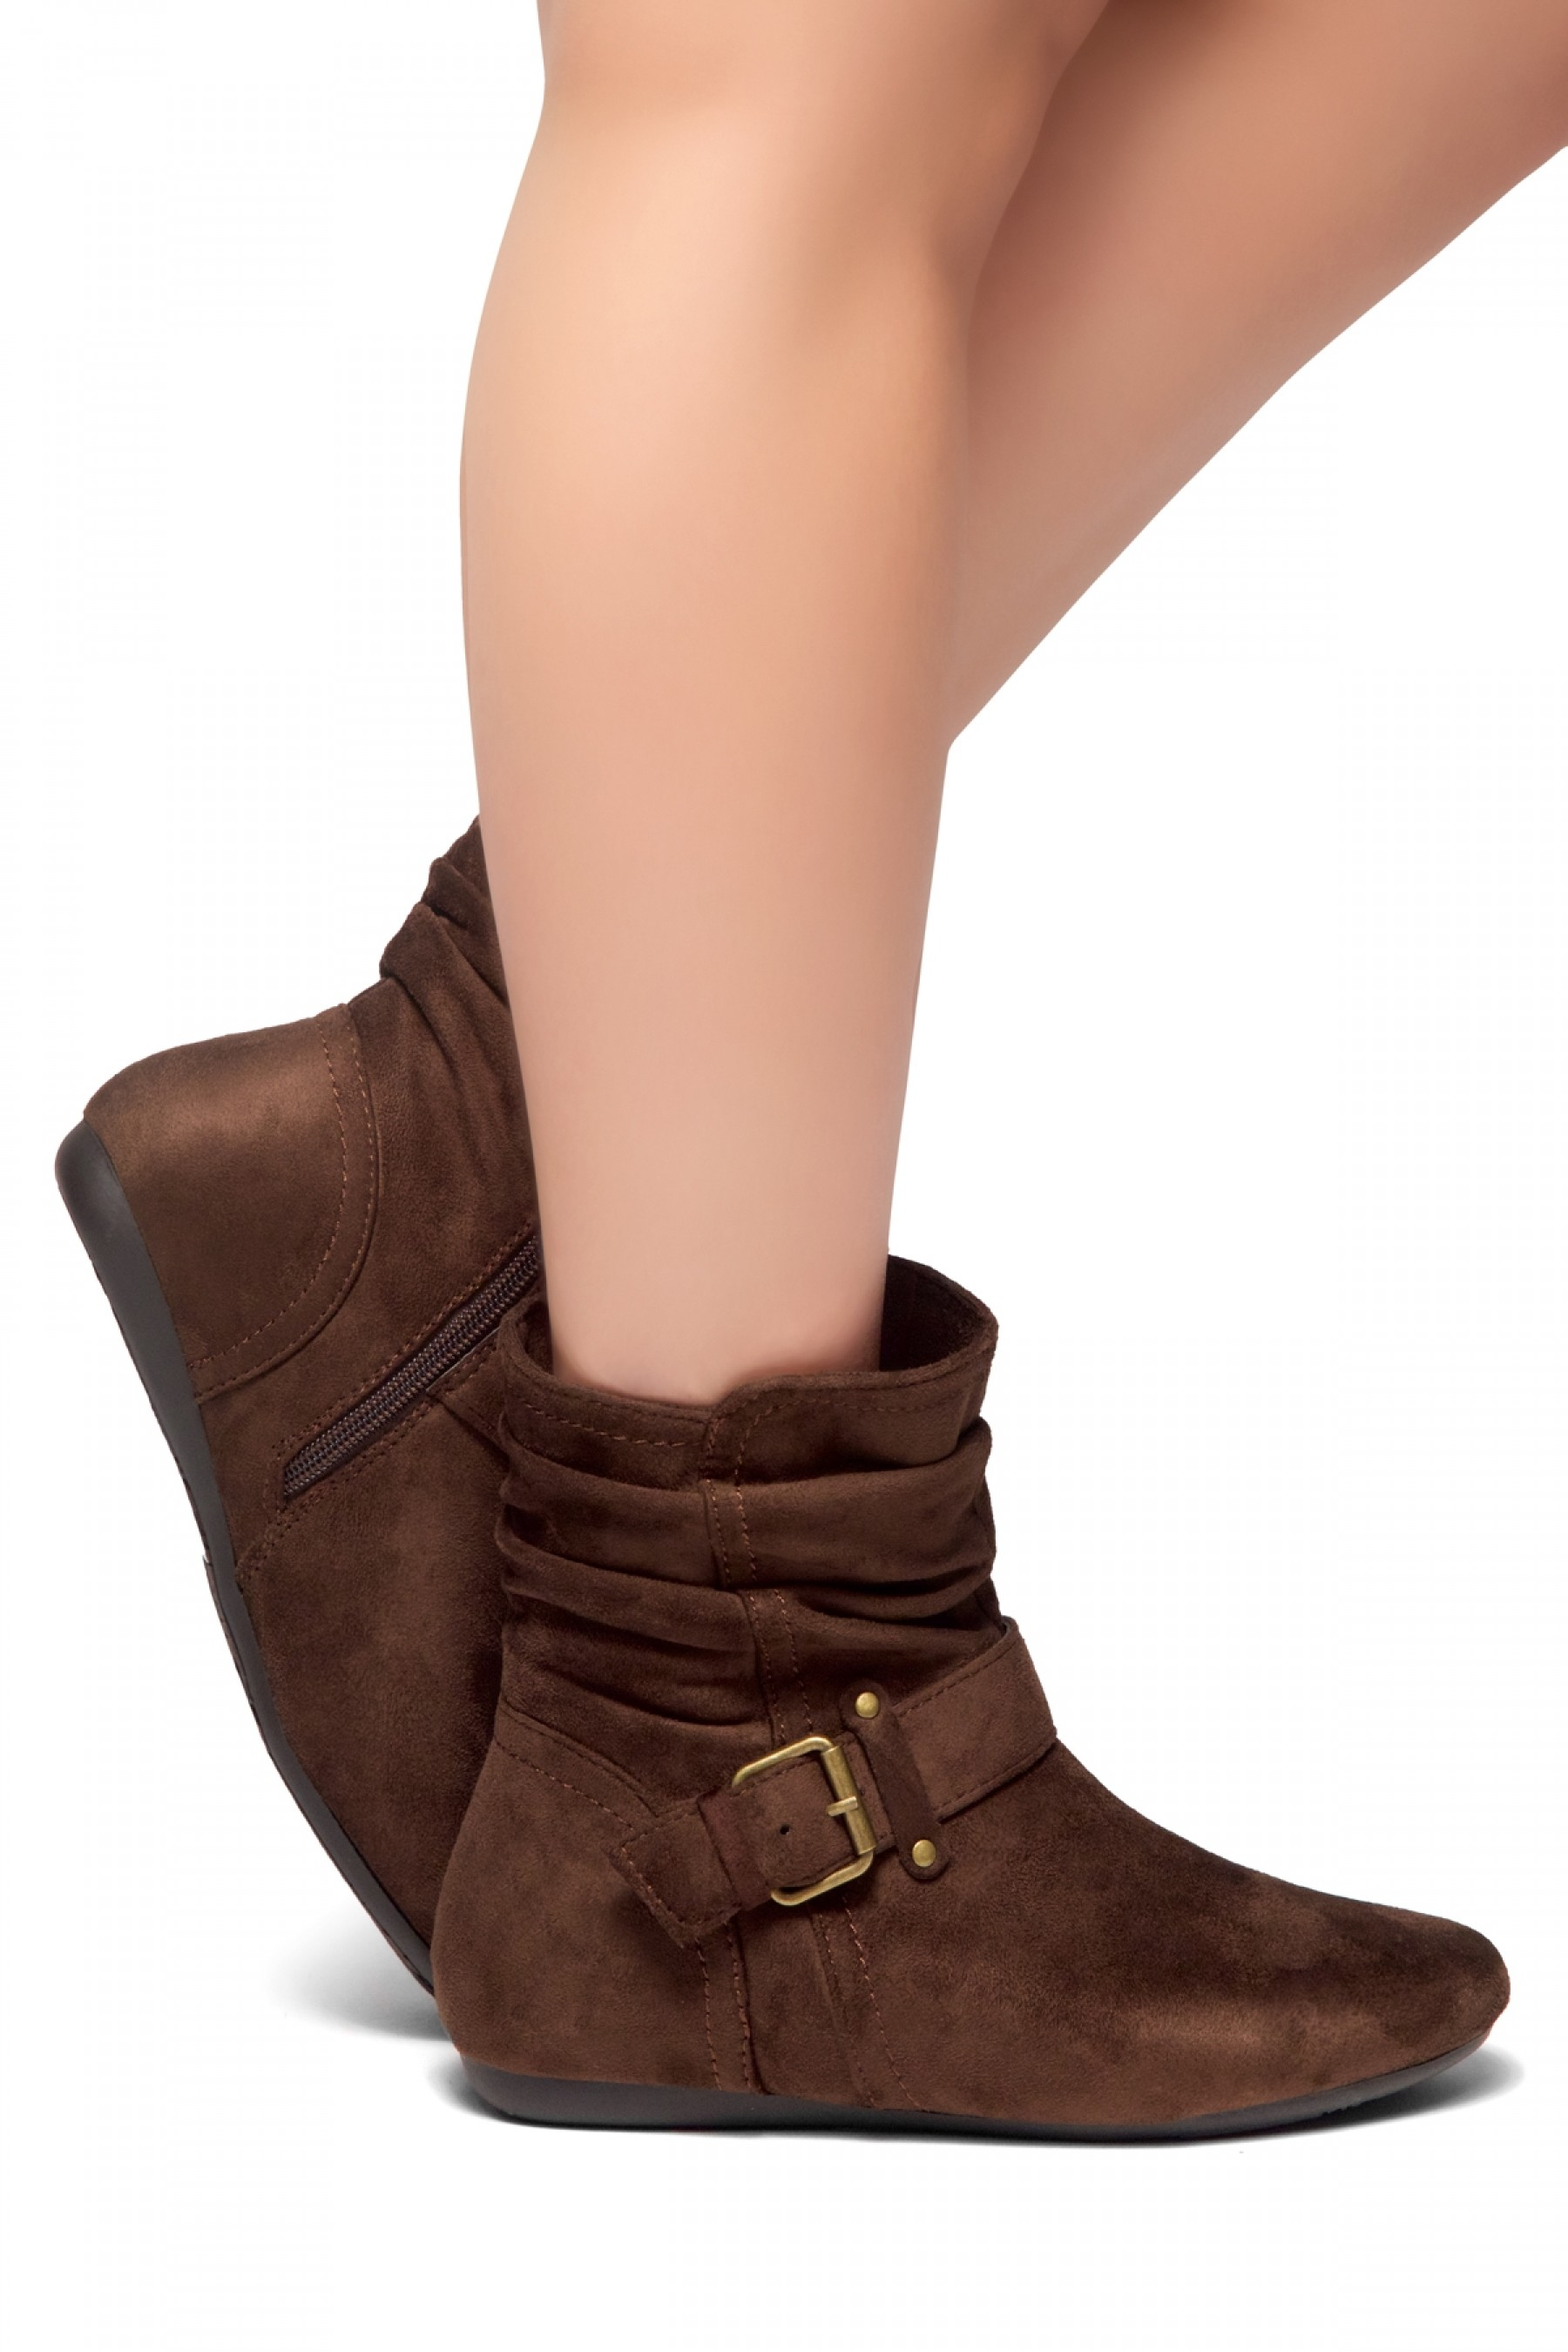 Women's Brown Shearlly Faux Suede Buckled up booties-- [Runs Small, Order One Size Bigger]